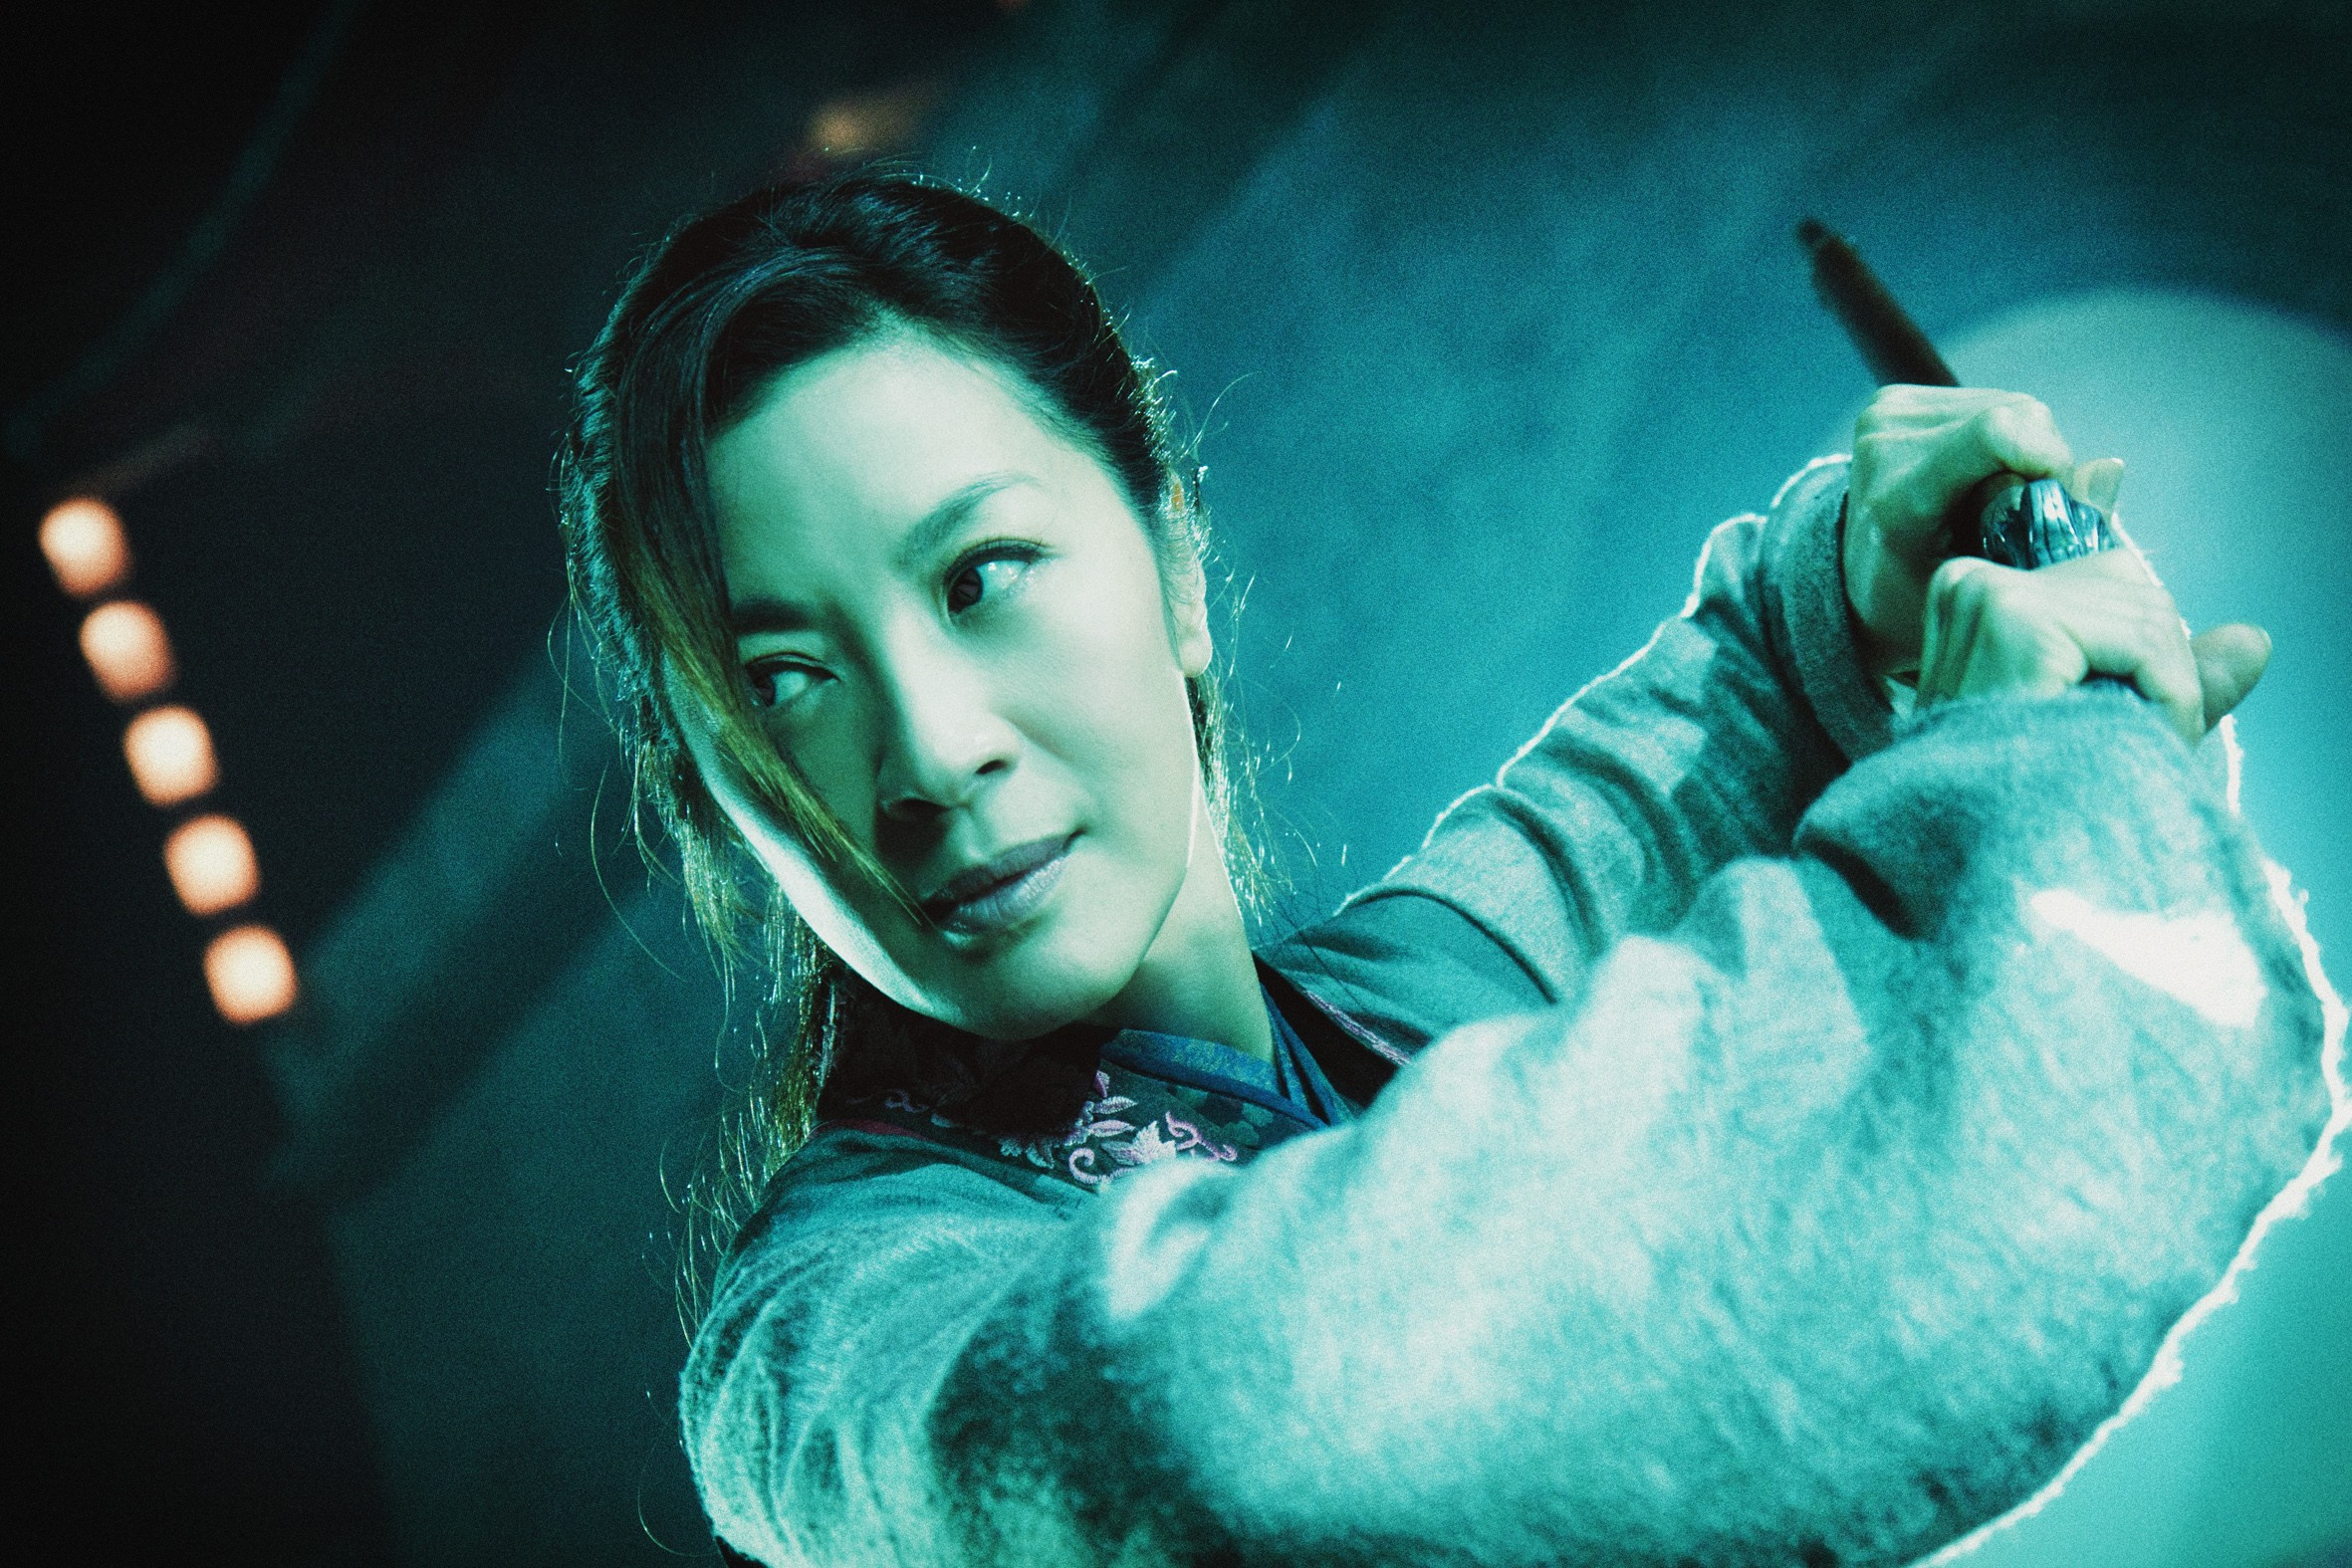 Wallpaper: Michelle Yeoh in Reign of Assassins